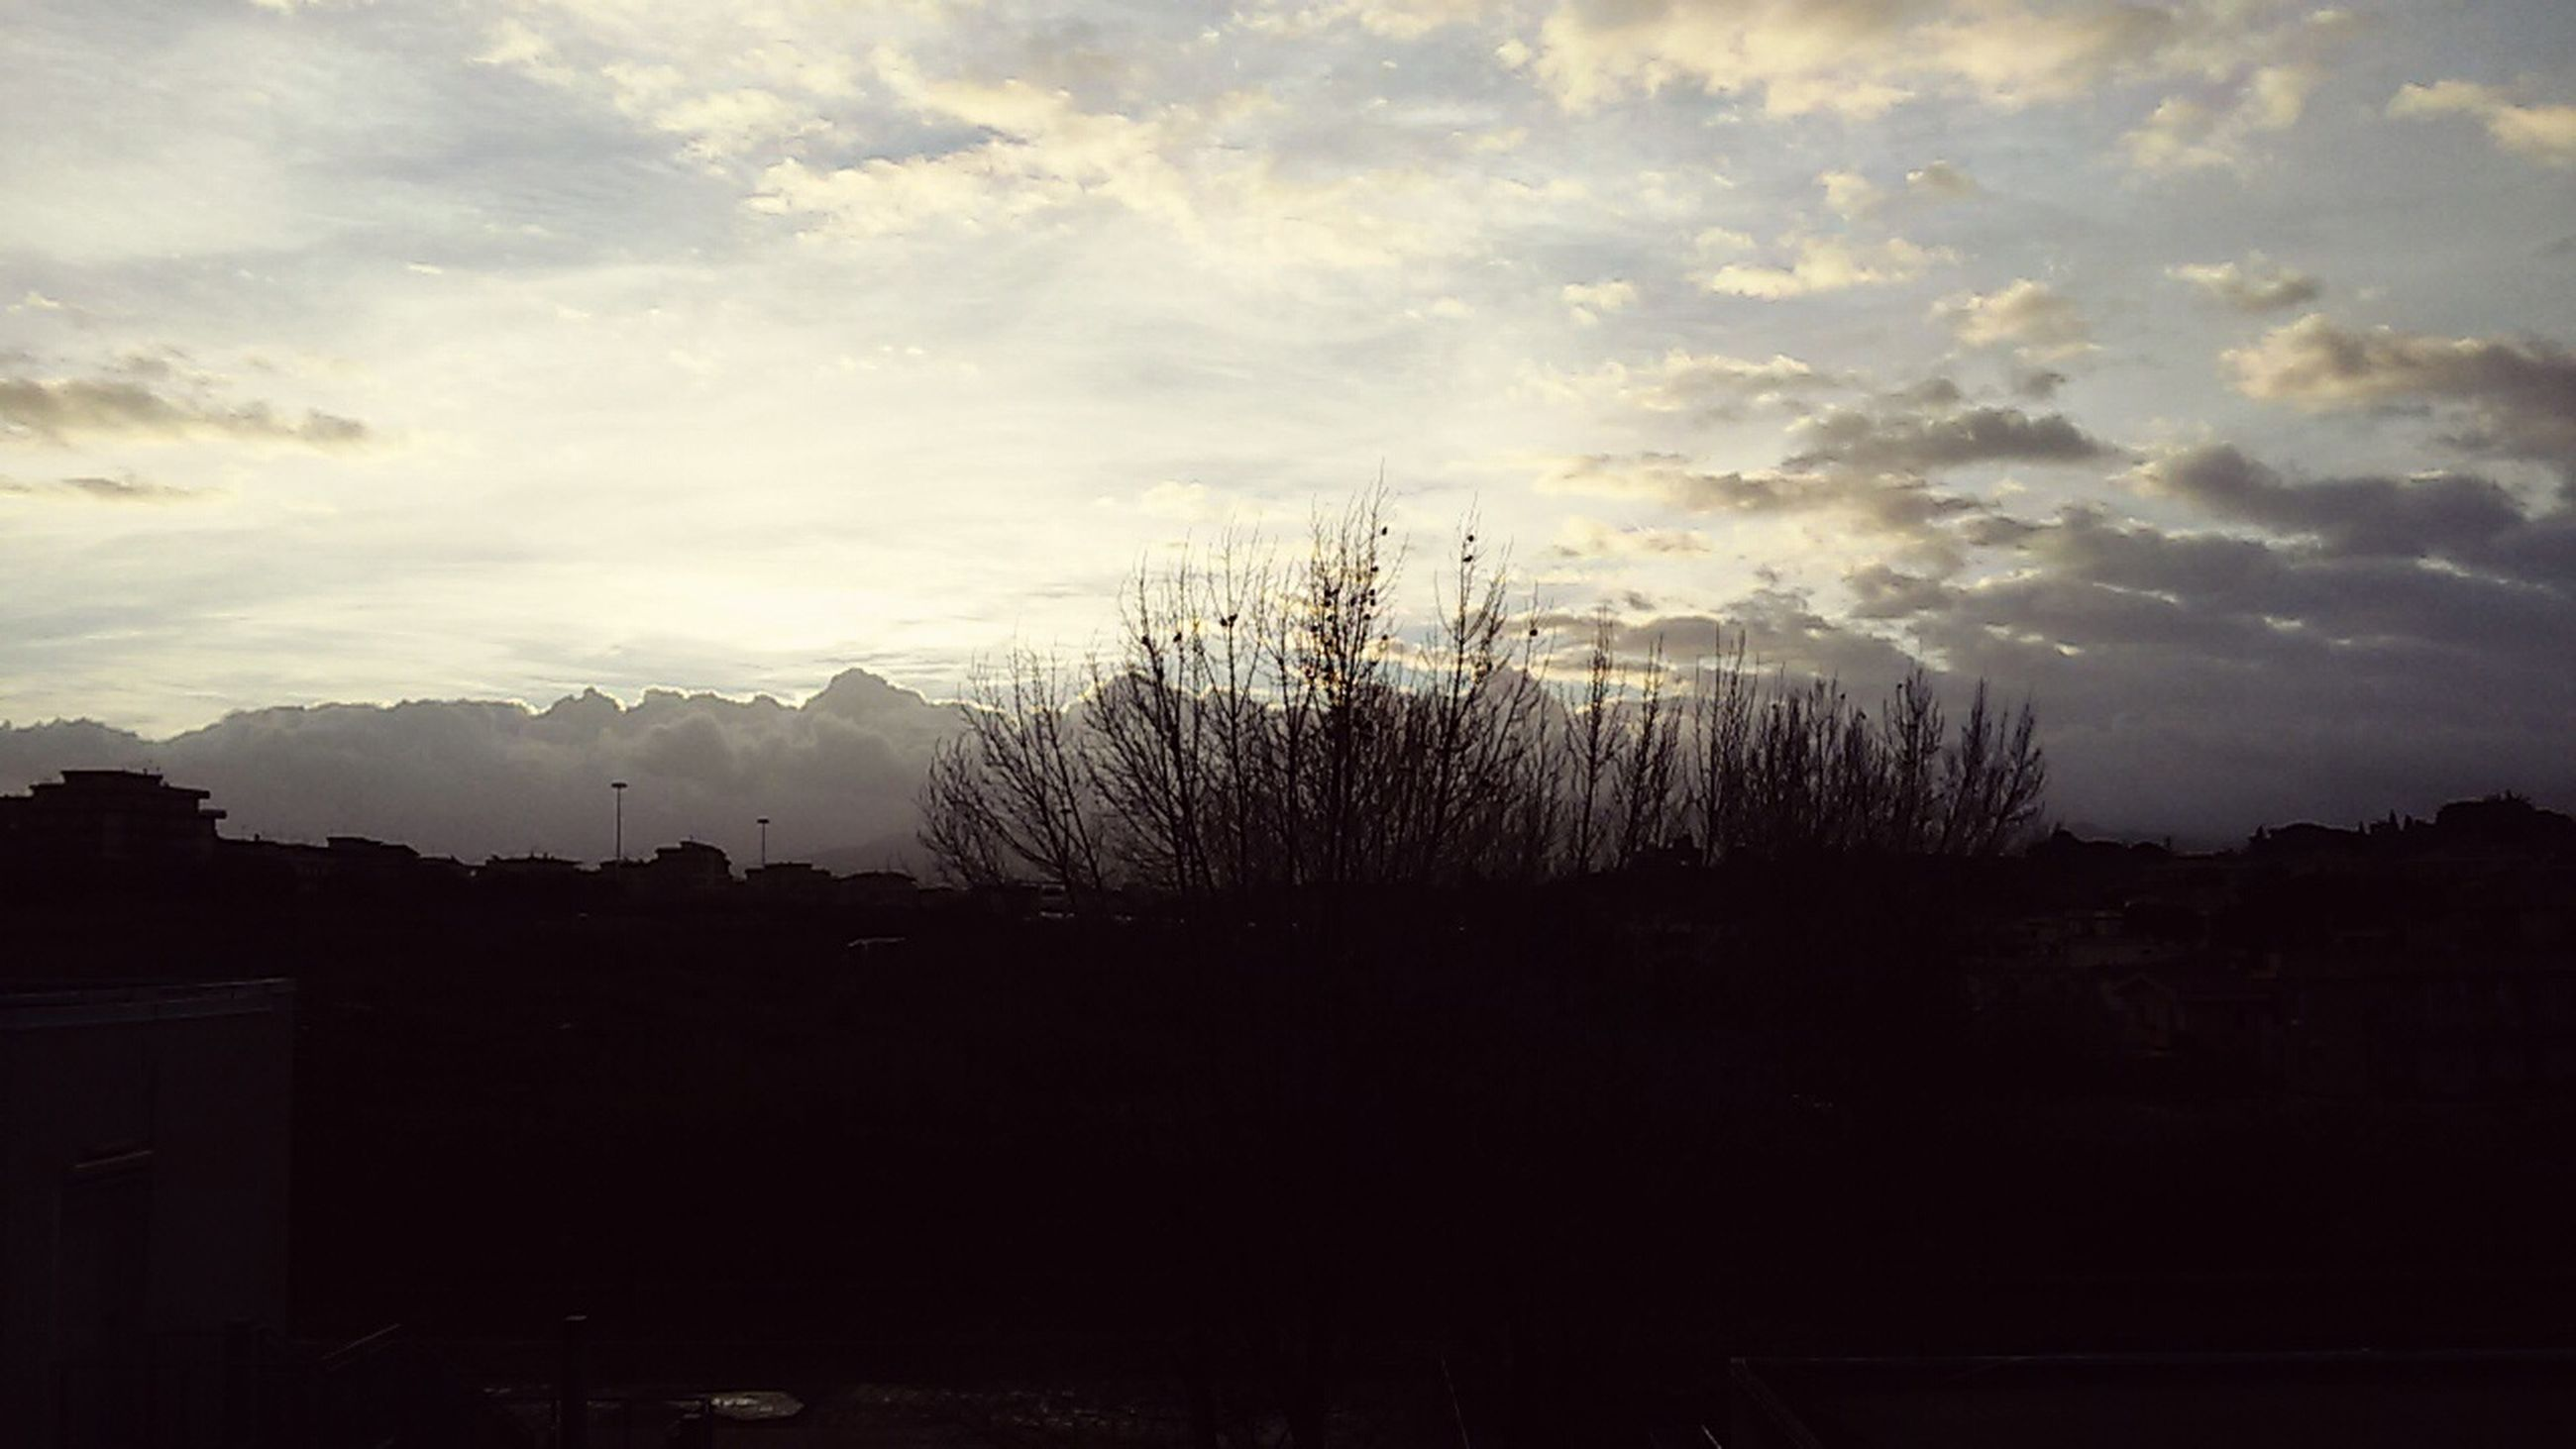 silhouette, sky, tree, tranquility, tranquil scene, cloud - sky, scenics, beauty in nature, nature, landscape, sunset, cloud, dusk, dark, cloudy, growth, outdoors, outline, idyllic, no people